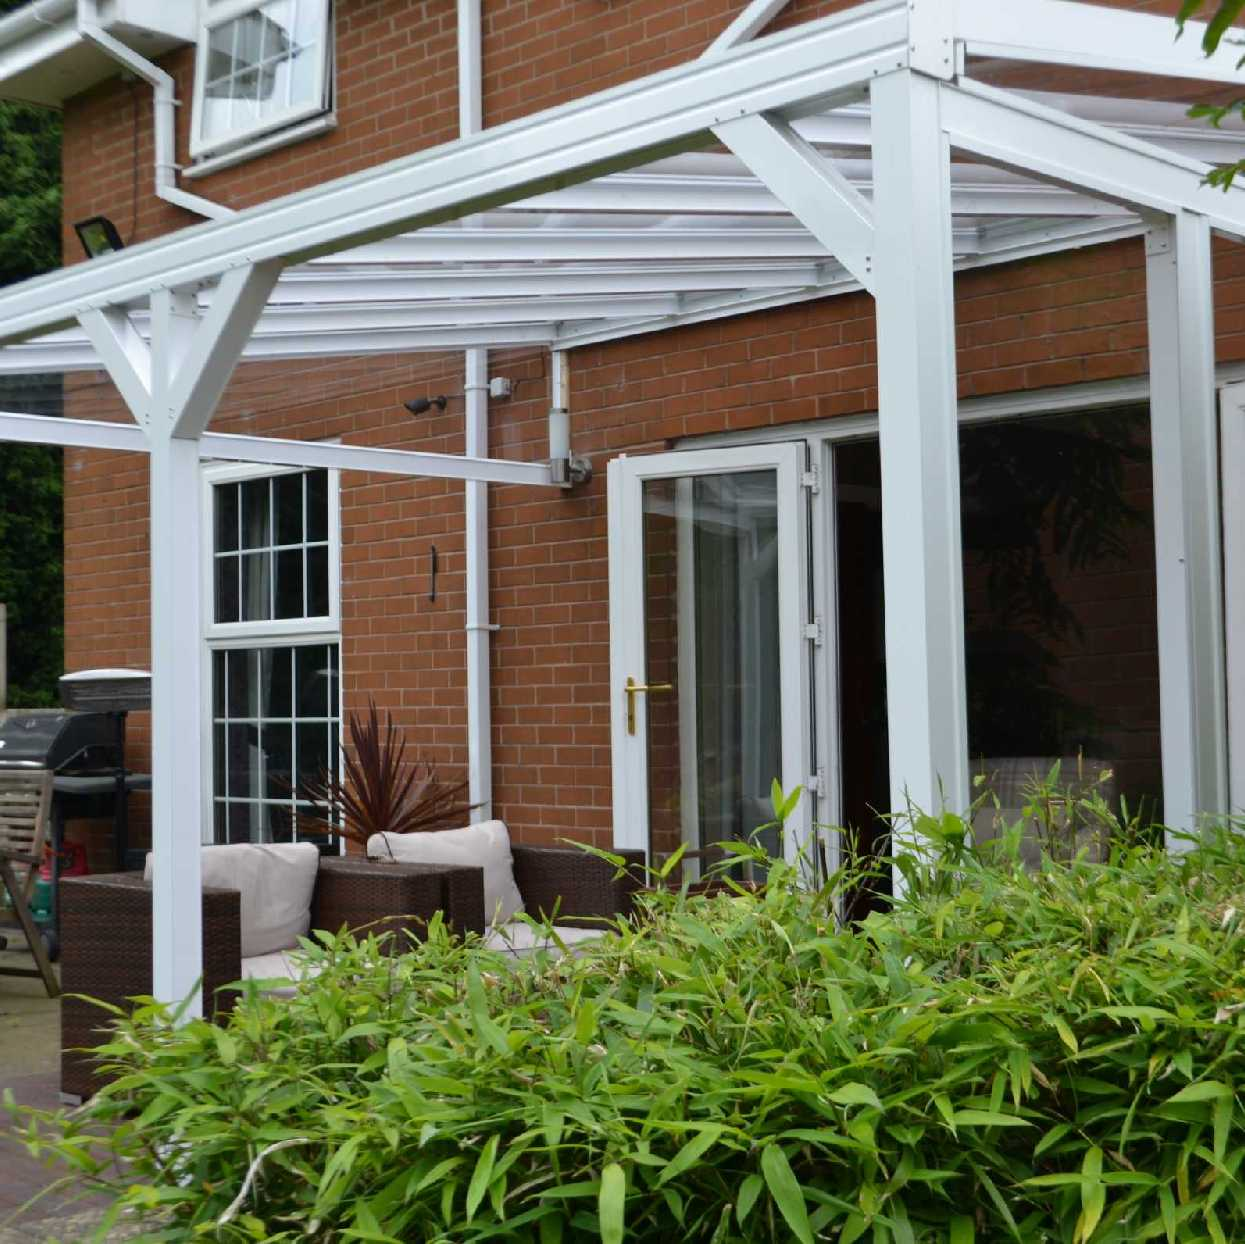 Omega Smart White Lean-To Canopy UNGLAZED for 6mm Glazing - 2.8m (W) x 2.0m (P), (2) Supporting Posts from Omega Build